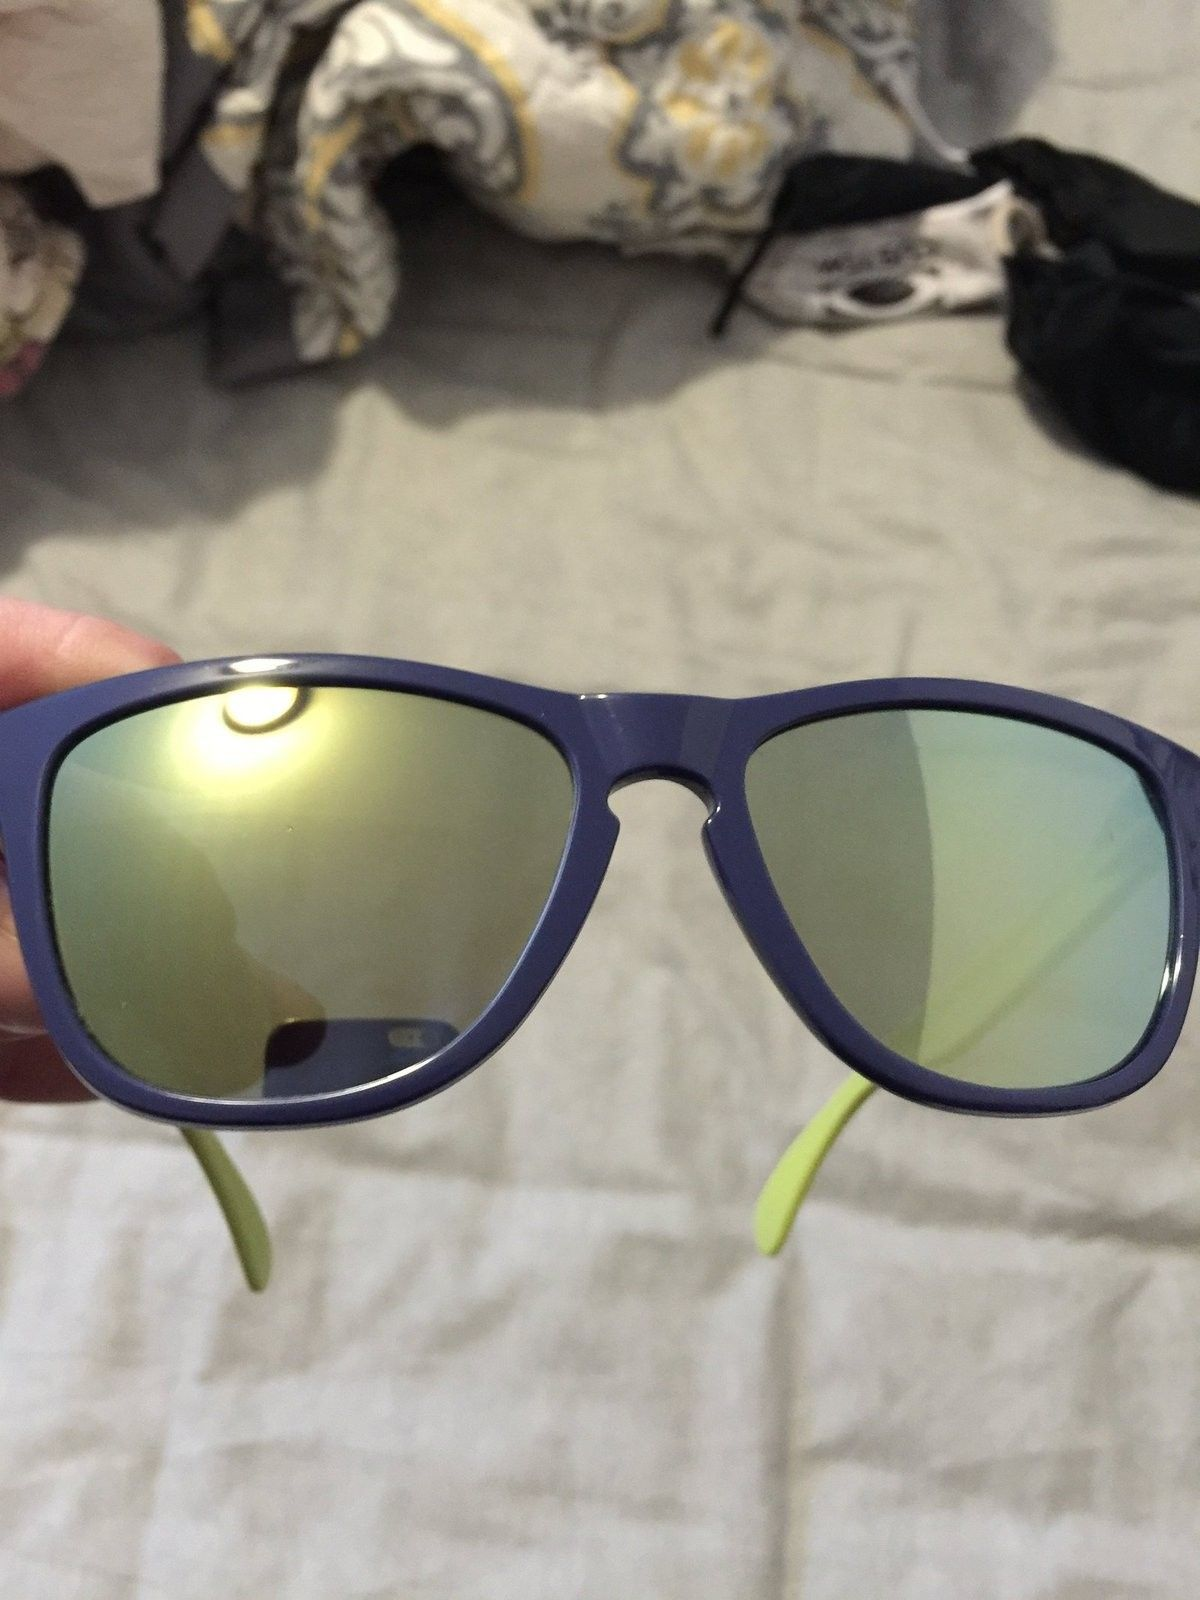 Collectors Frogskins Coastal with Emerald Iridium ANOTHER PRICE DROP - image.jpg